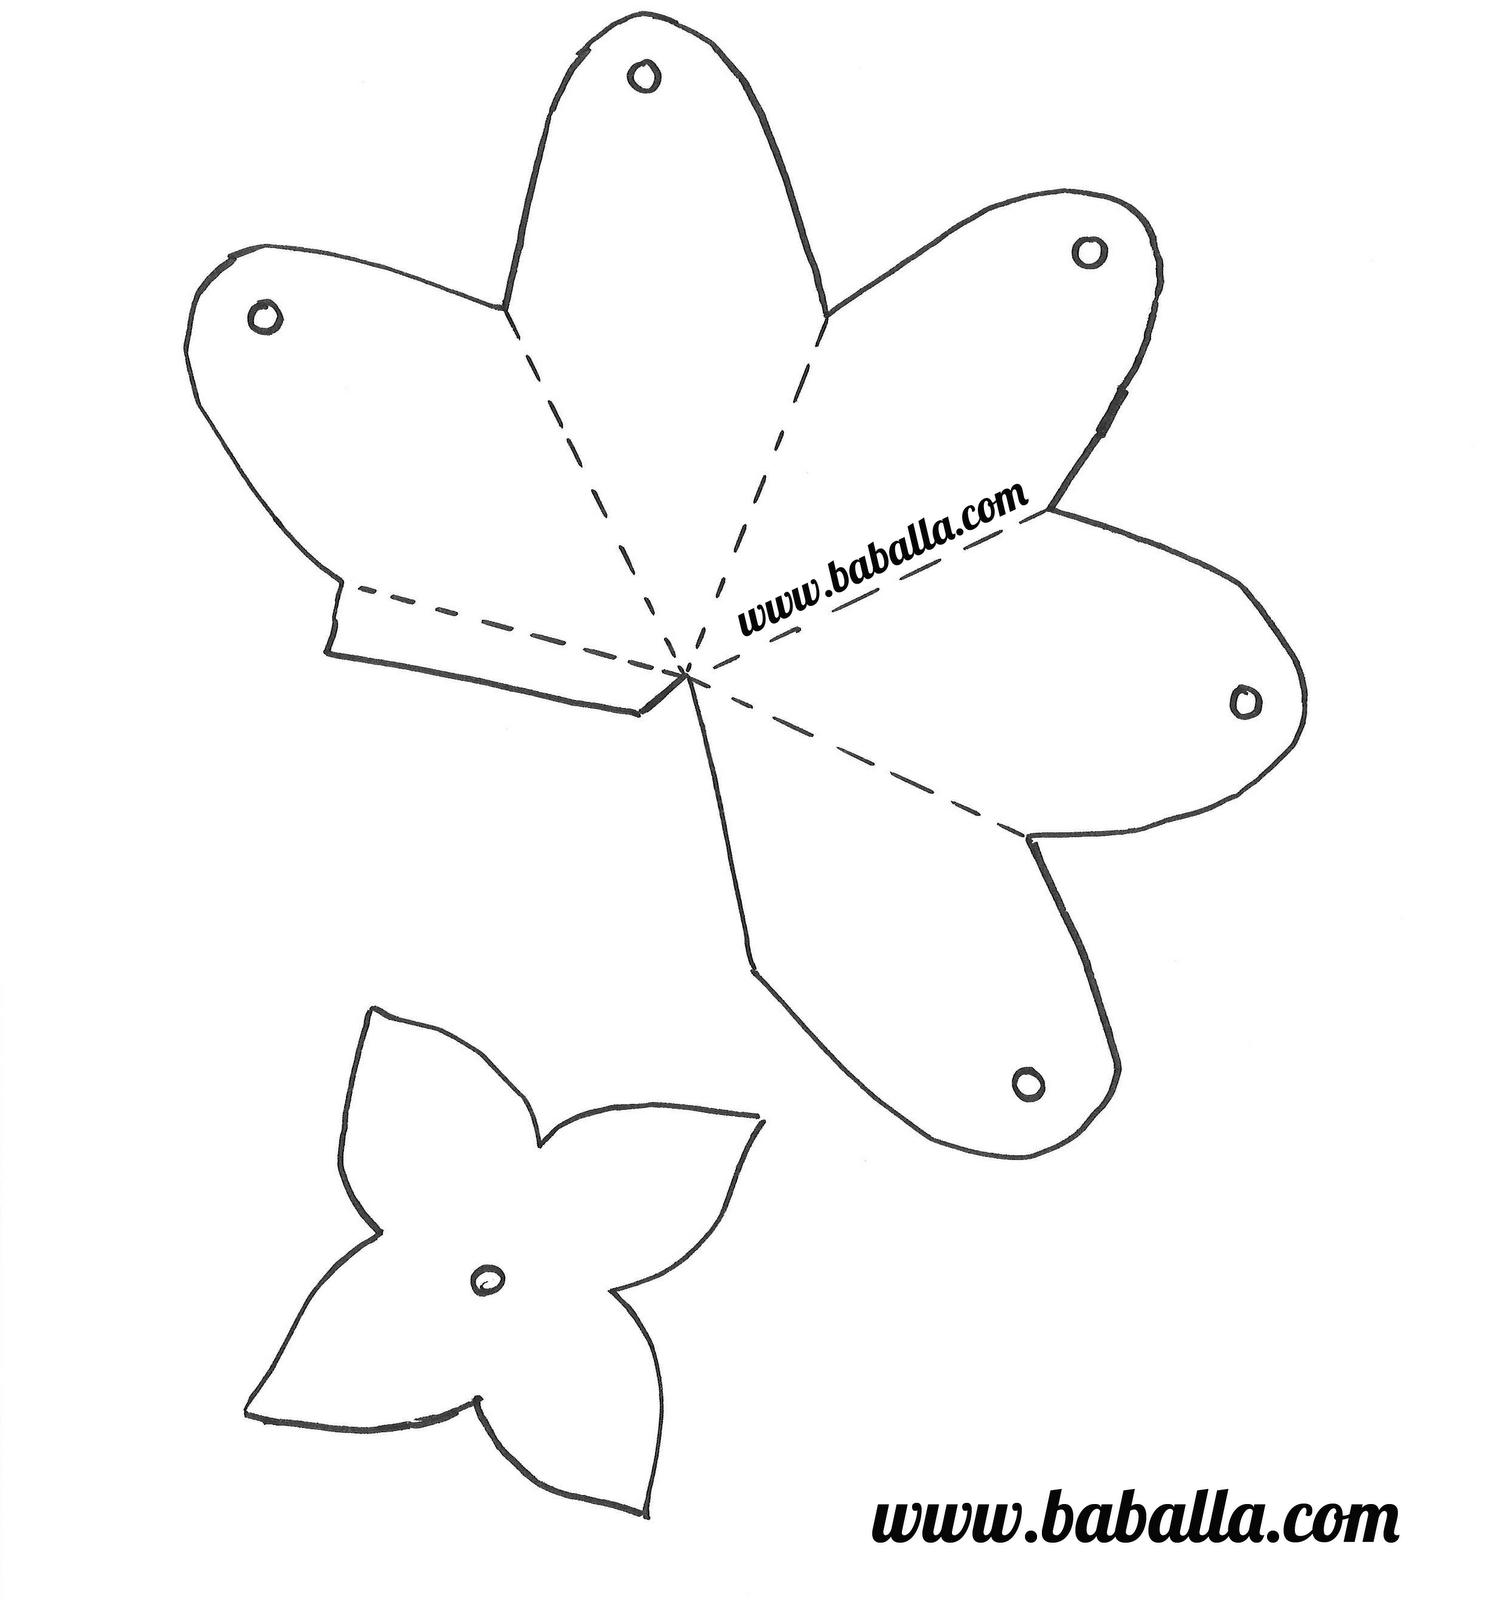 Free Paper Piecing Patterns additionally Popcorn Free Vectors Download additionally Vorlage Eines Cupcake moreover Handicraft Template moreover Birthday. on cupcake wrapper flowers